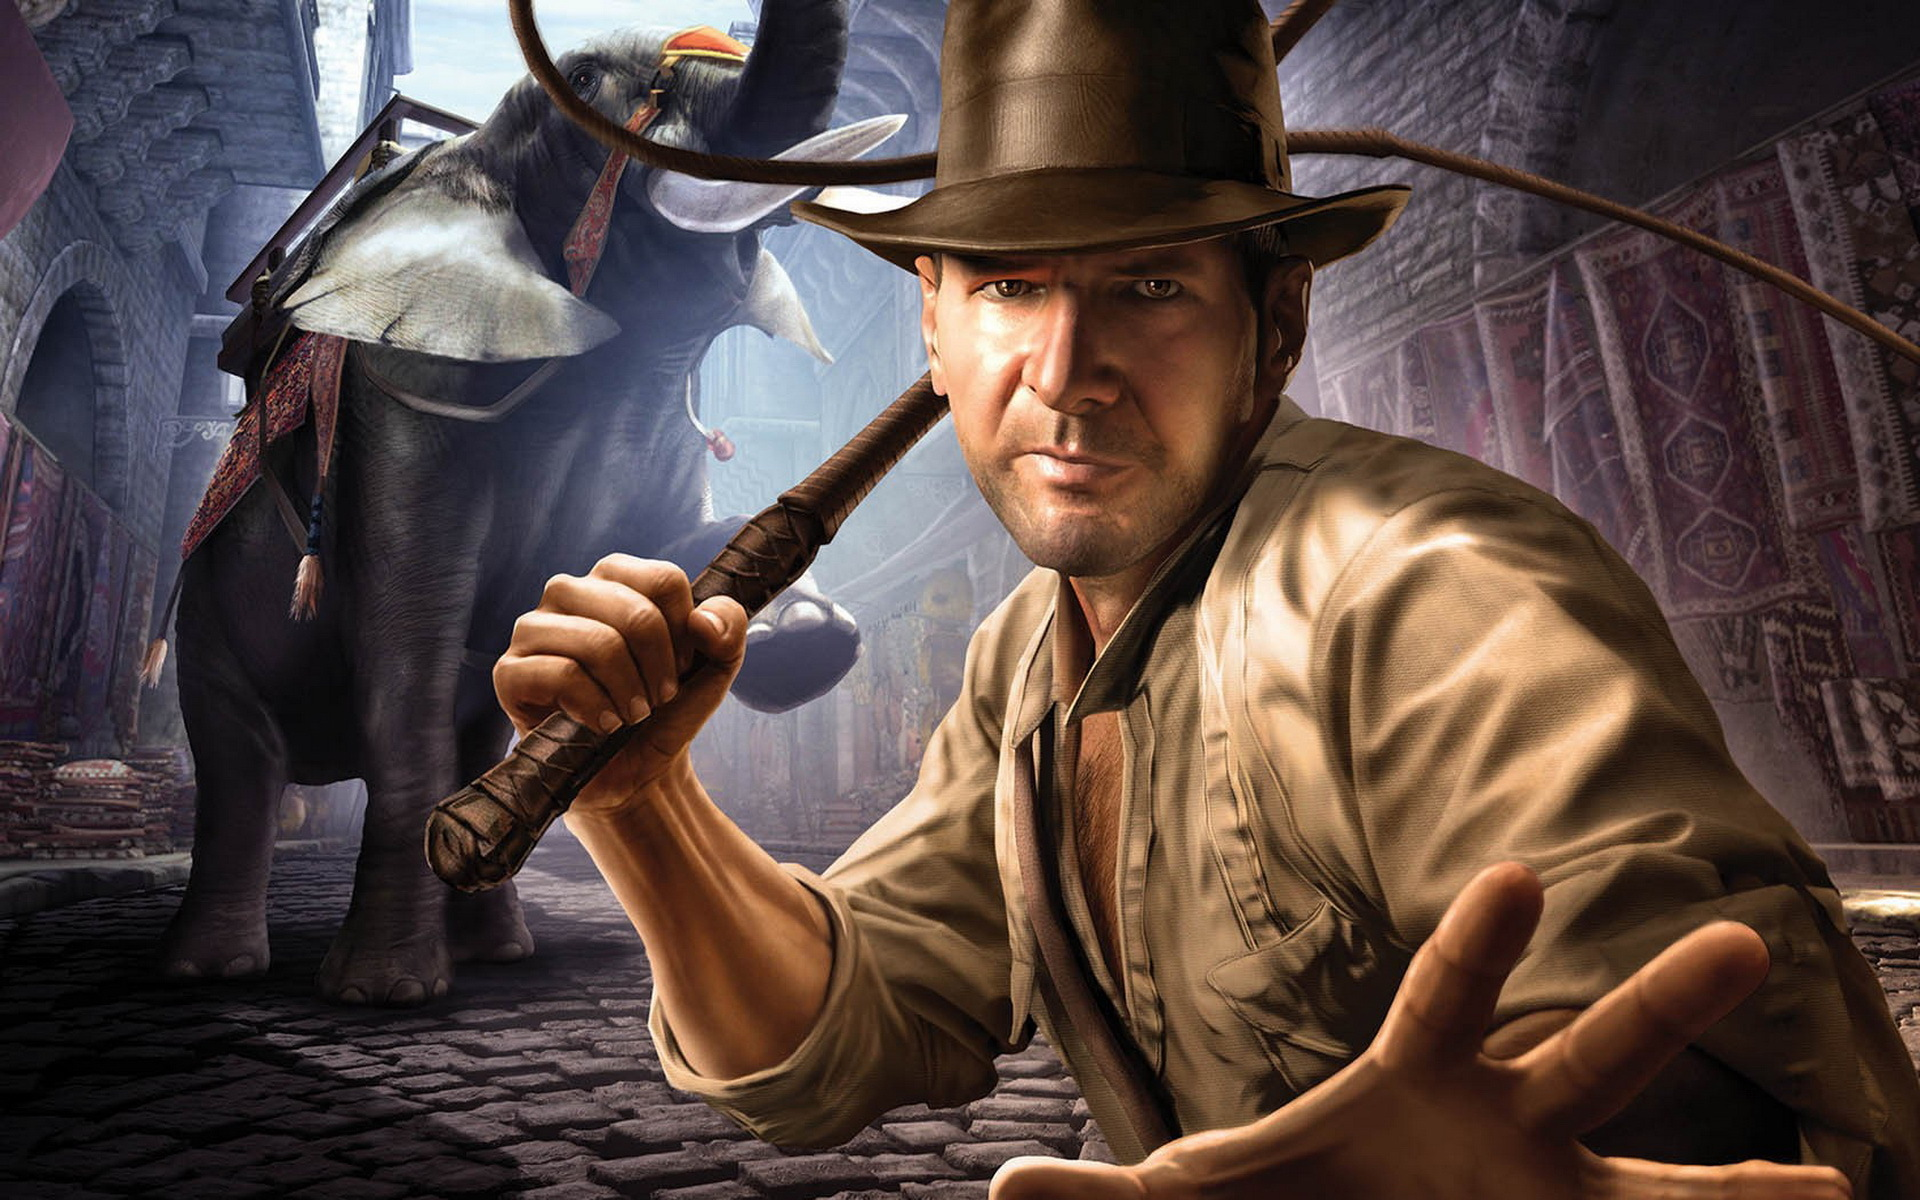 9651 download wallpaper Cinema, Games, People, Actors, Men, Pictures, Indiana Jones, Harrison Ford screensavers and pictures for free